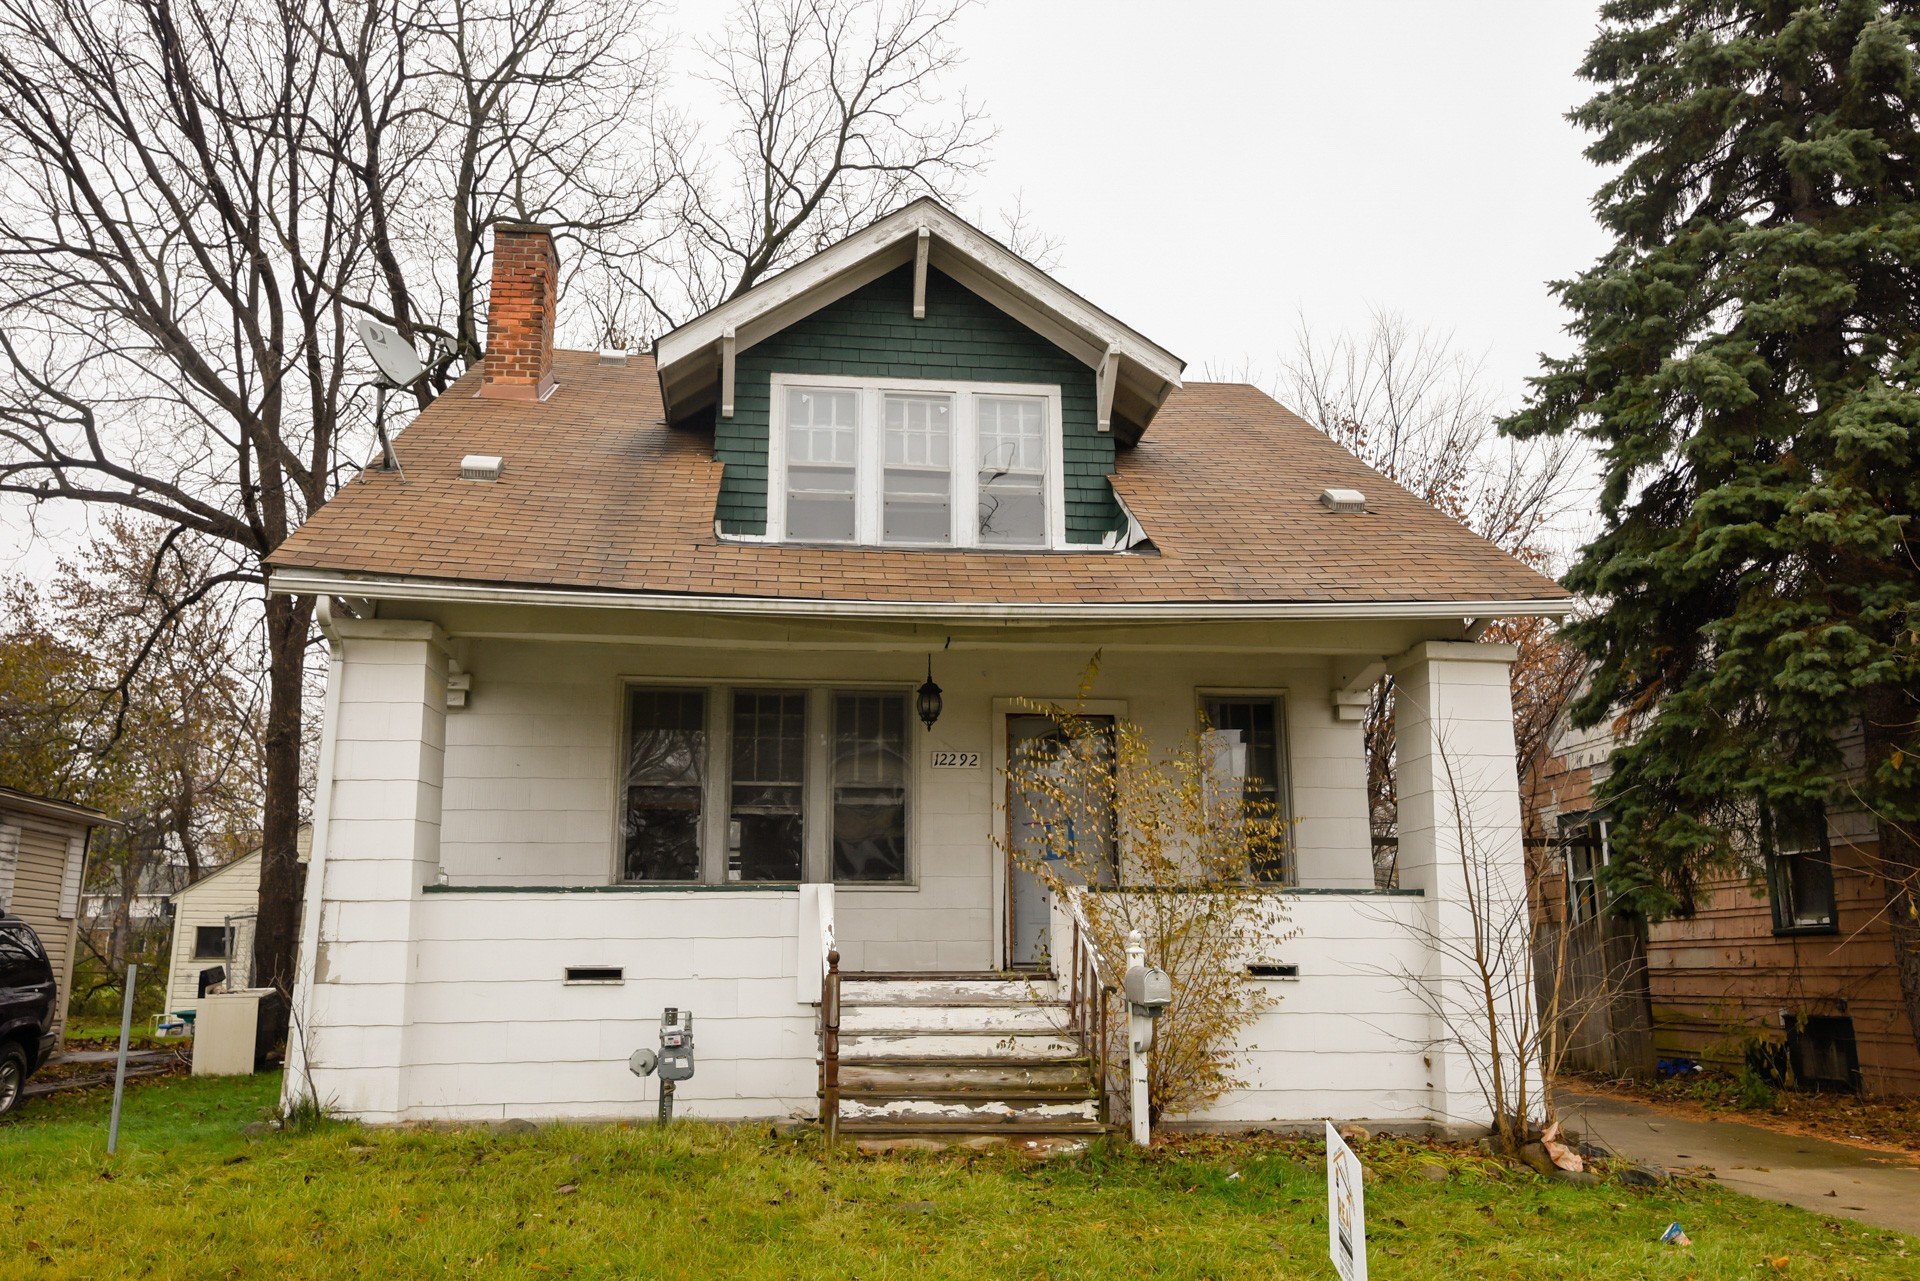 12292 Littlefield Street Detroit Mi 48227 3 Bedroom House For Rent For 750 Month Zumper